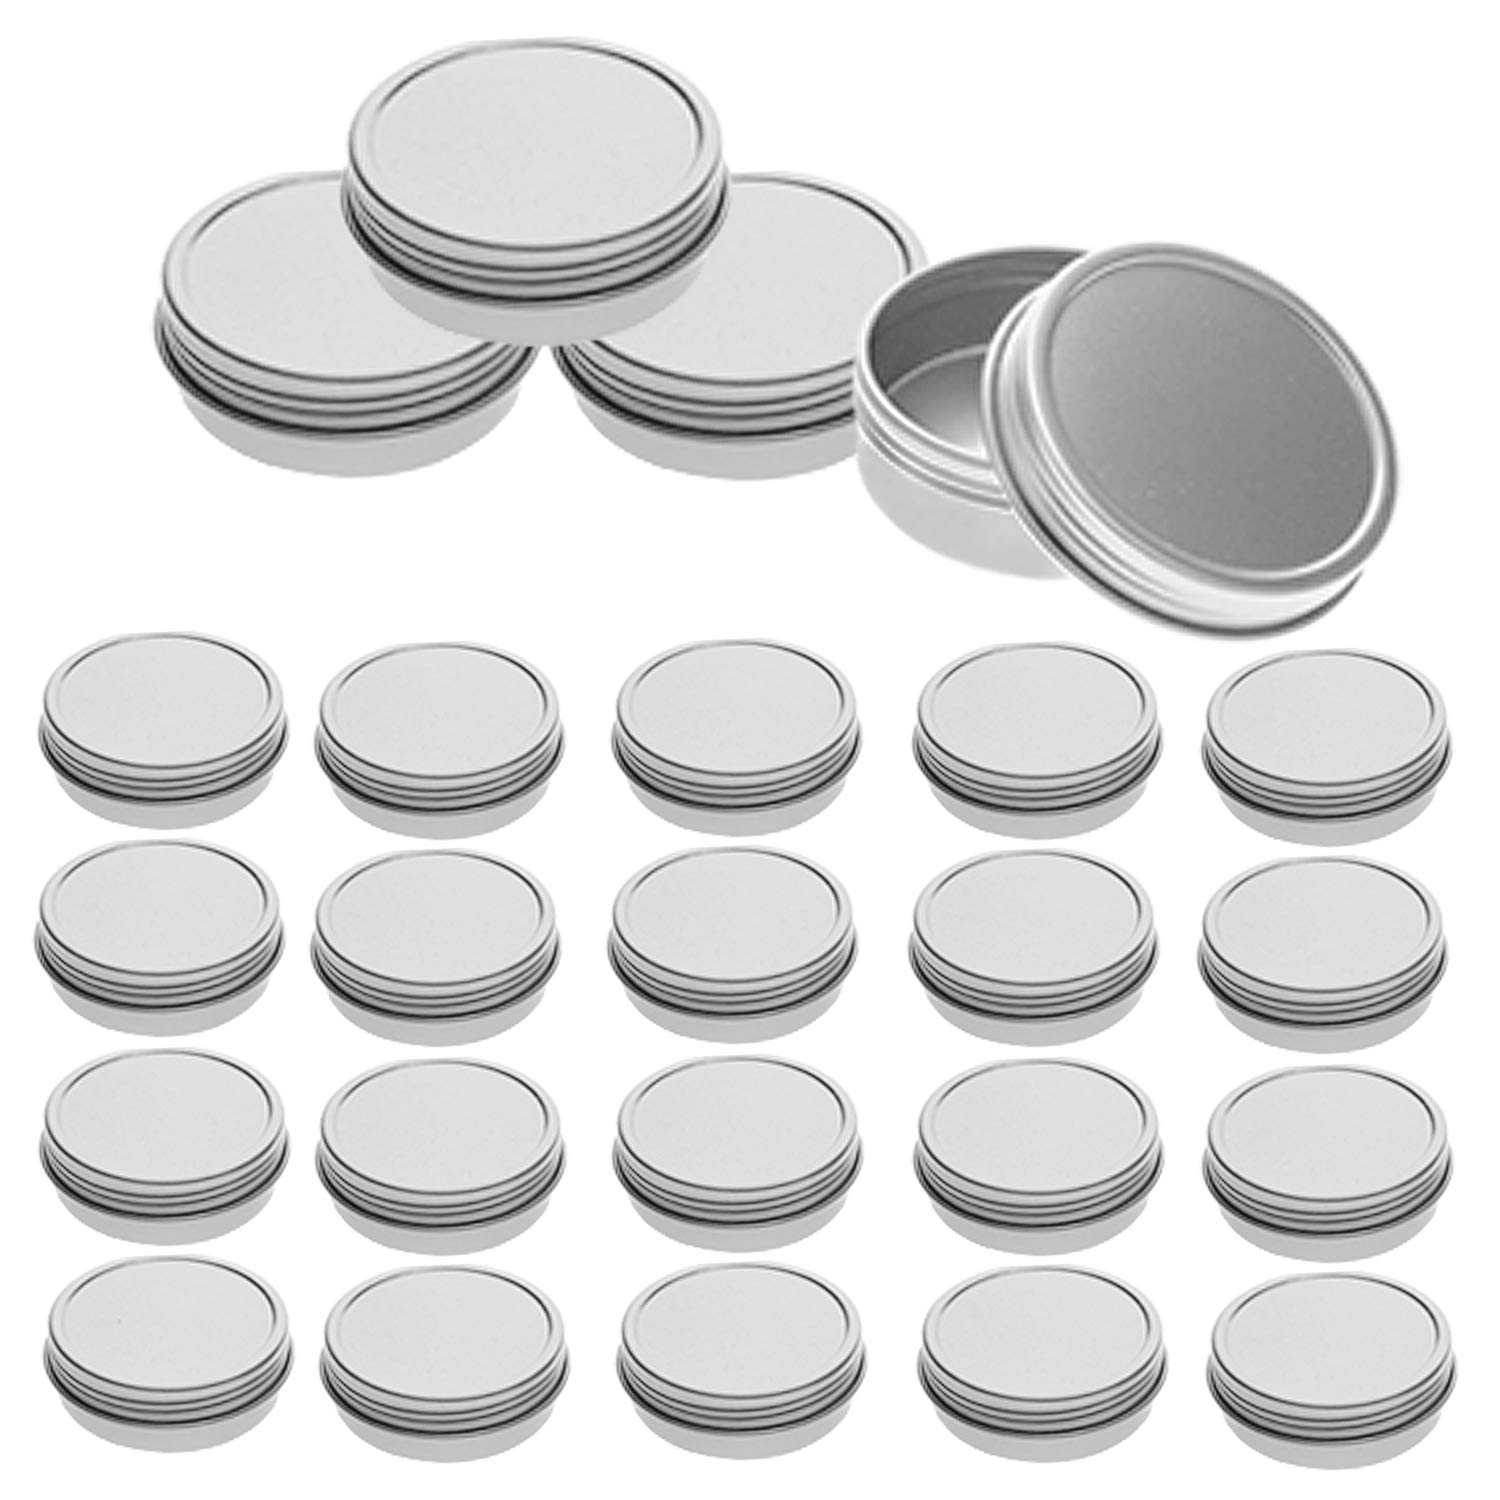 Mimi Pack 24 Pack Tins 2 oz Shallow Round Tins with Screw Lids Empty Tins Containers Cosmetics Tins Party Favors Tins and Food Storage Containers (Silver)